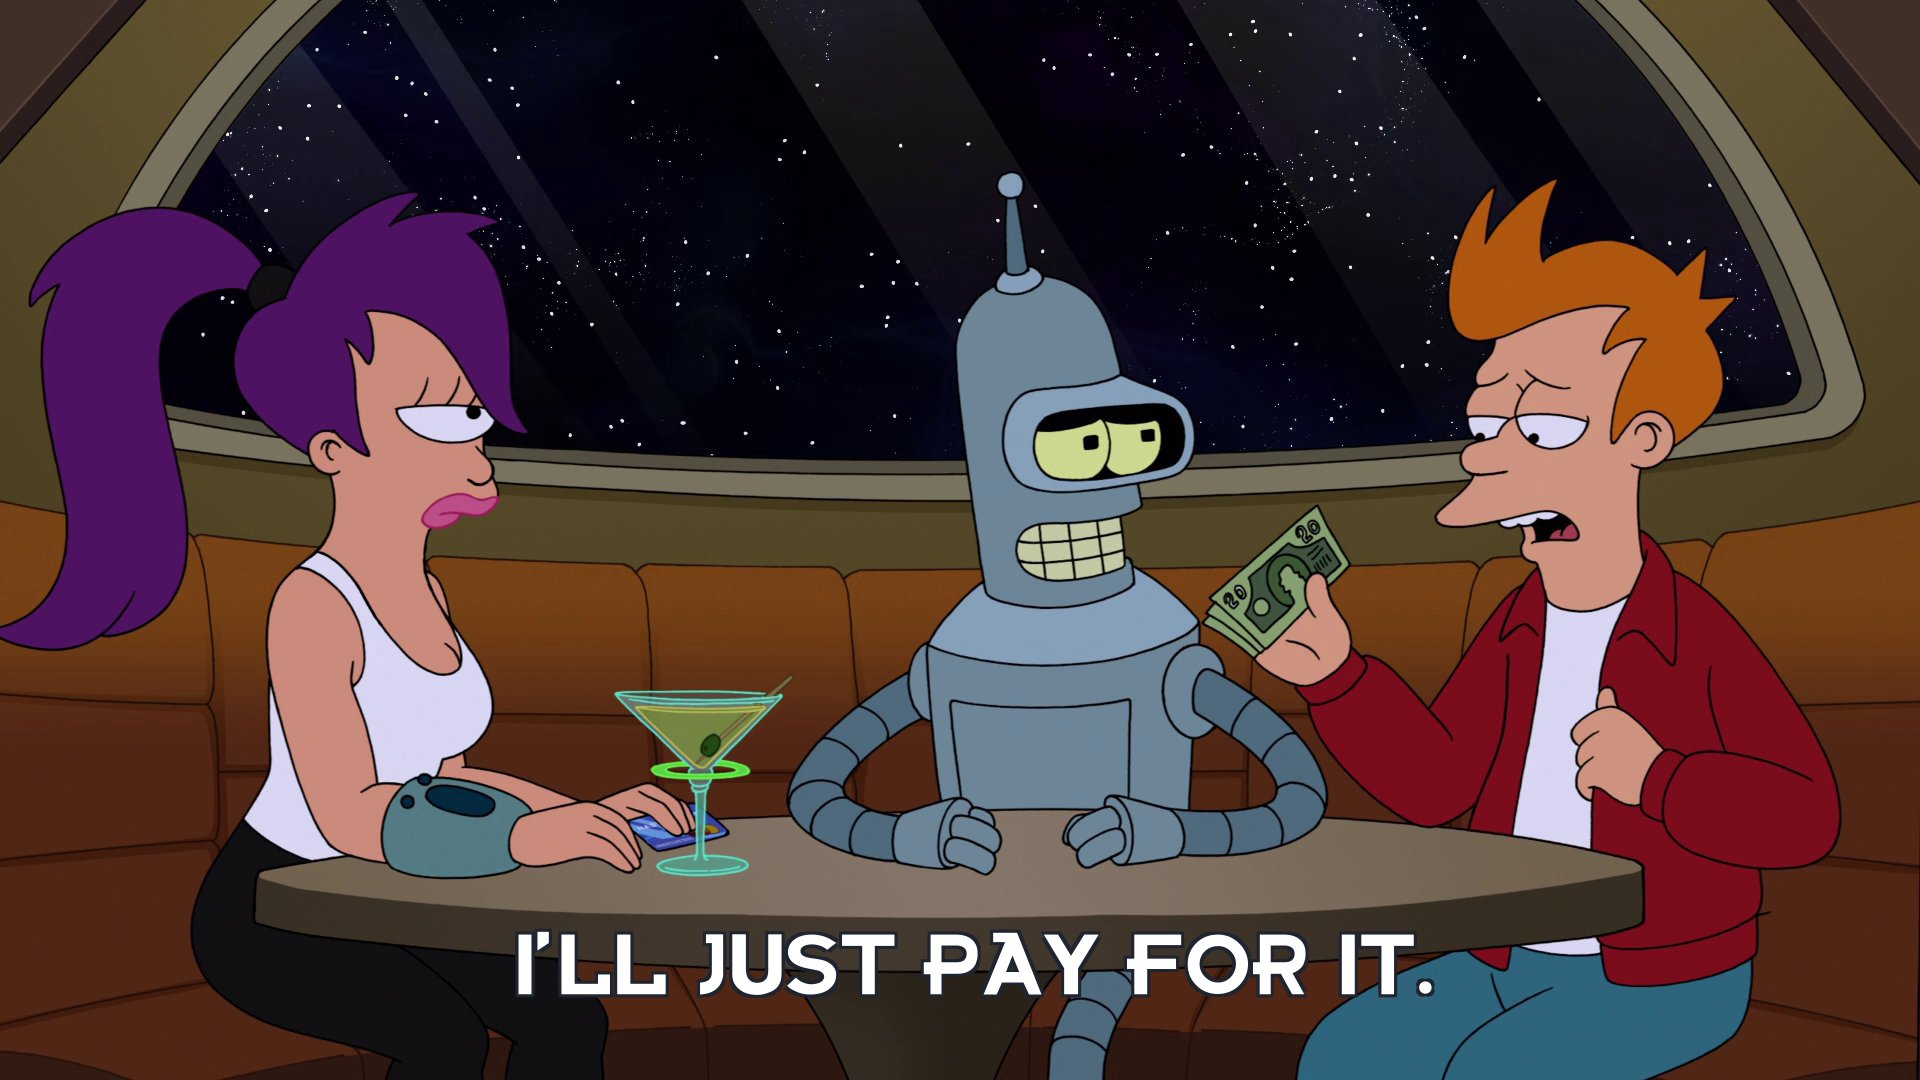 Philip J Fry: I'll just pay for it.